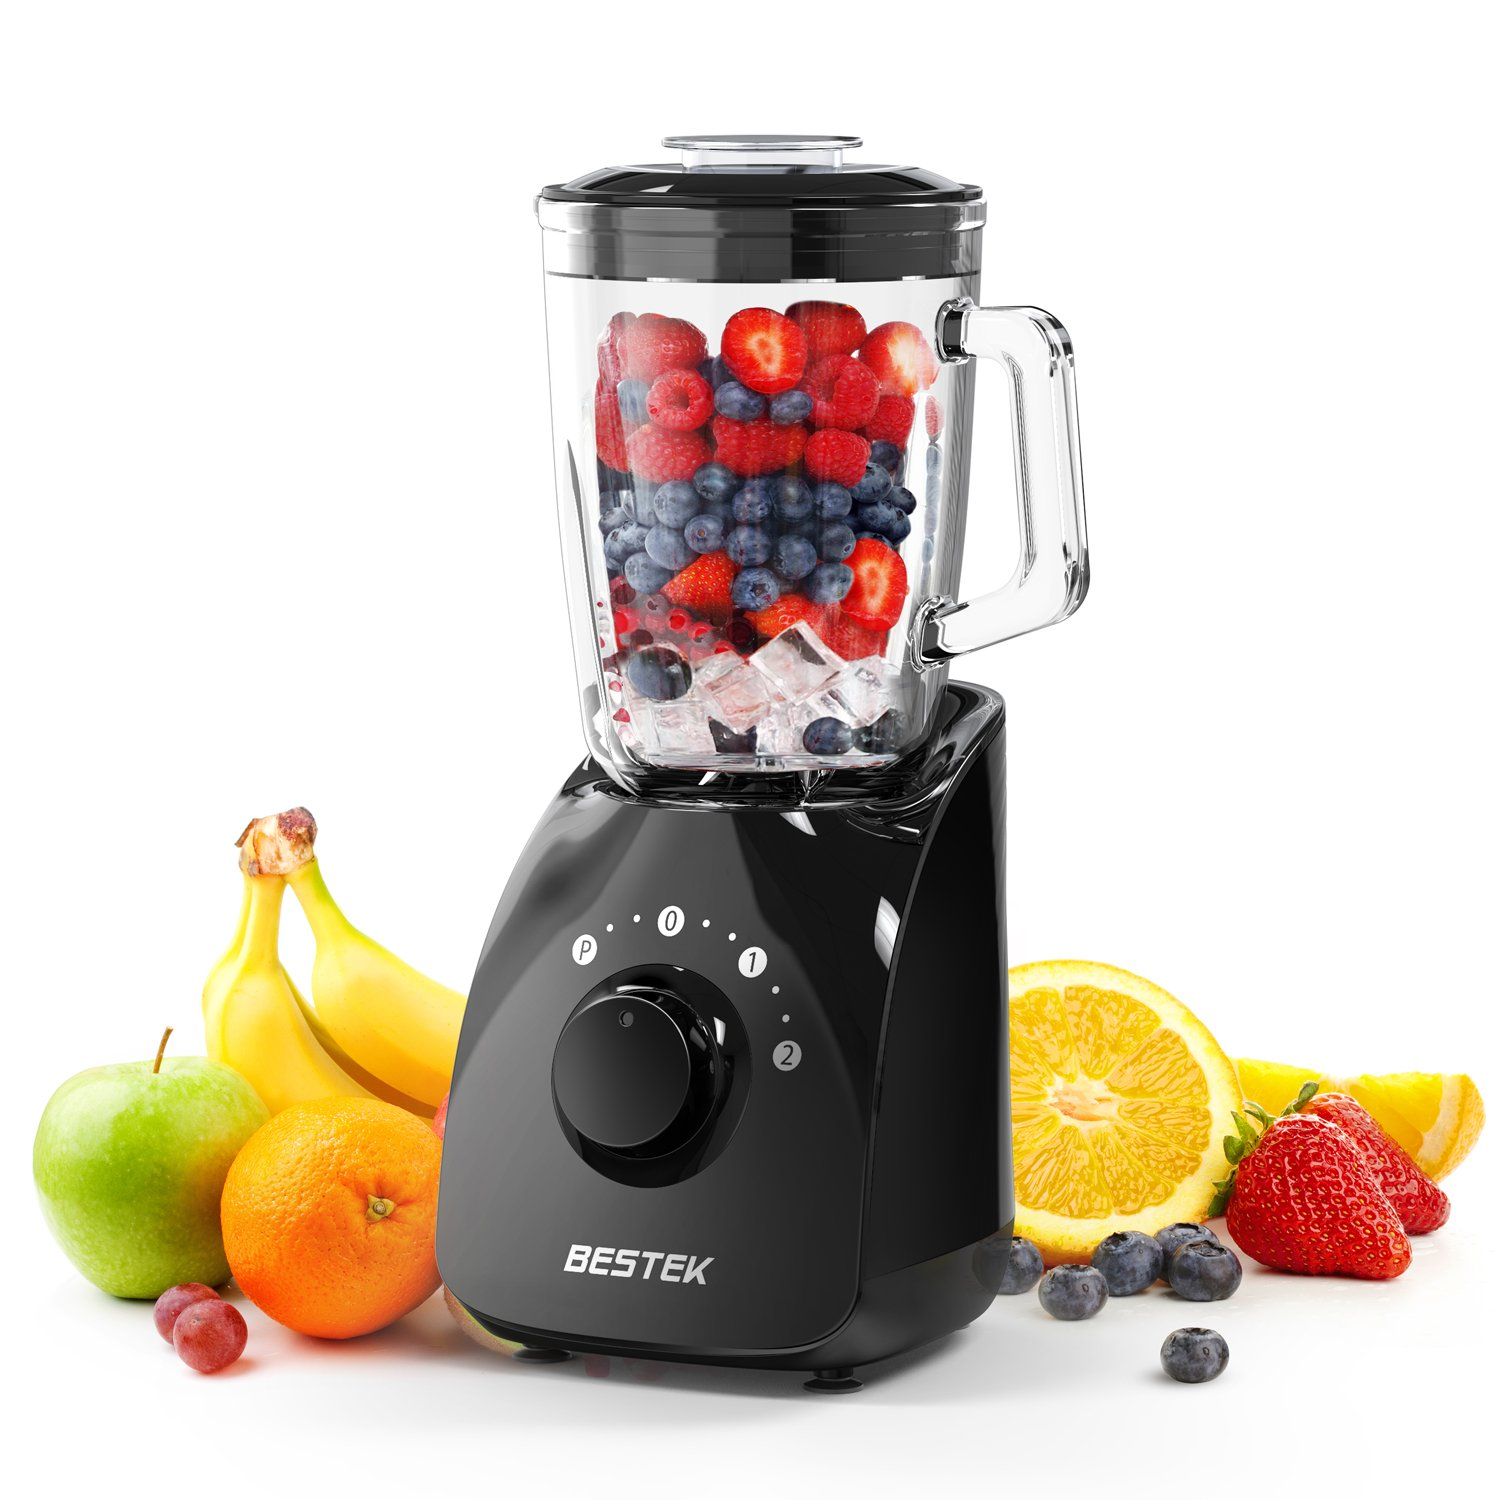 Smoothie Blender, BESTEK 350 Watts 20000 RPM Smoothie Maker with 1.5L BPA Free Glass Jar,2-Speed Function,Mixer,High Speed Blender for Shakes, Baby Food, Healthy Drink